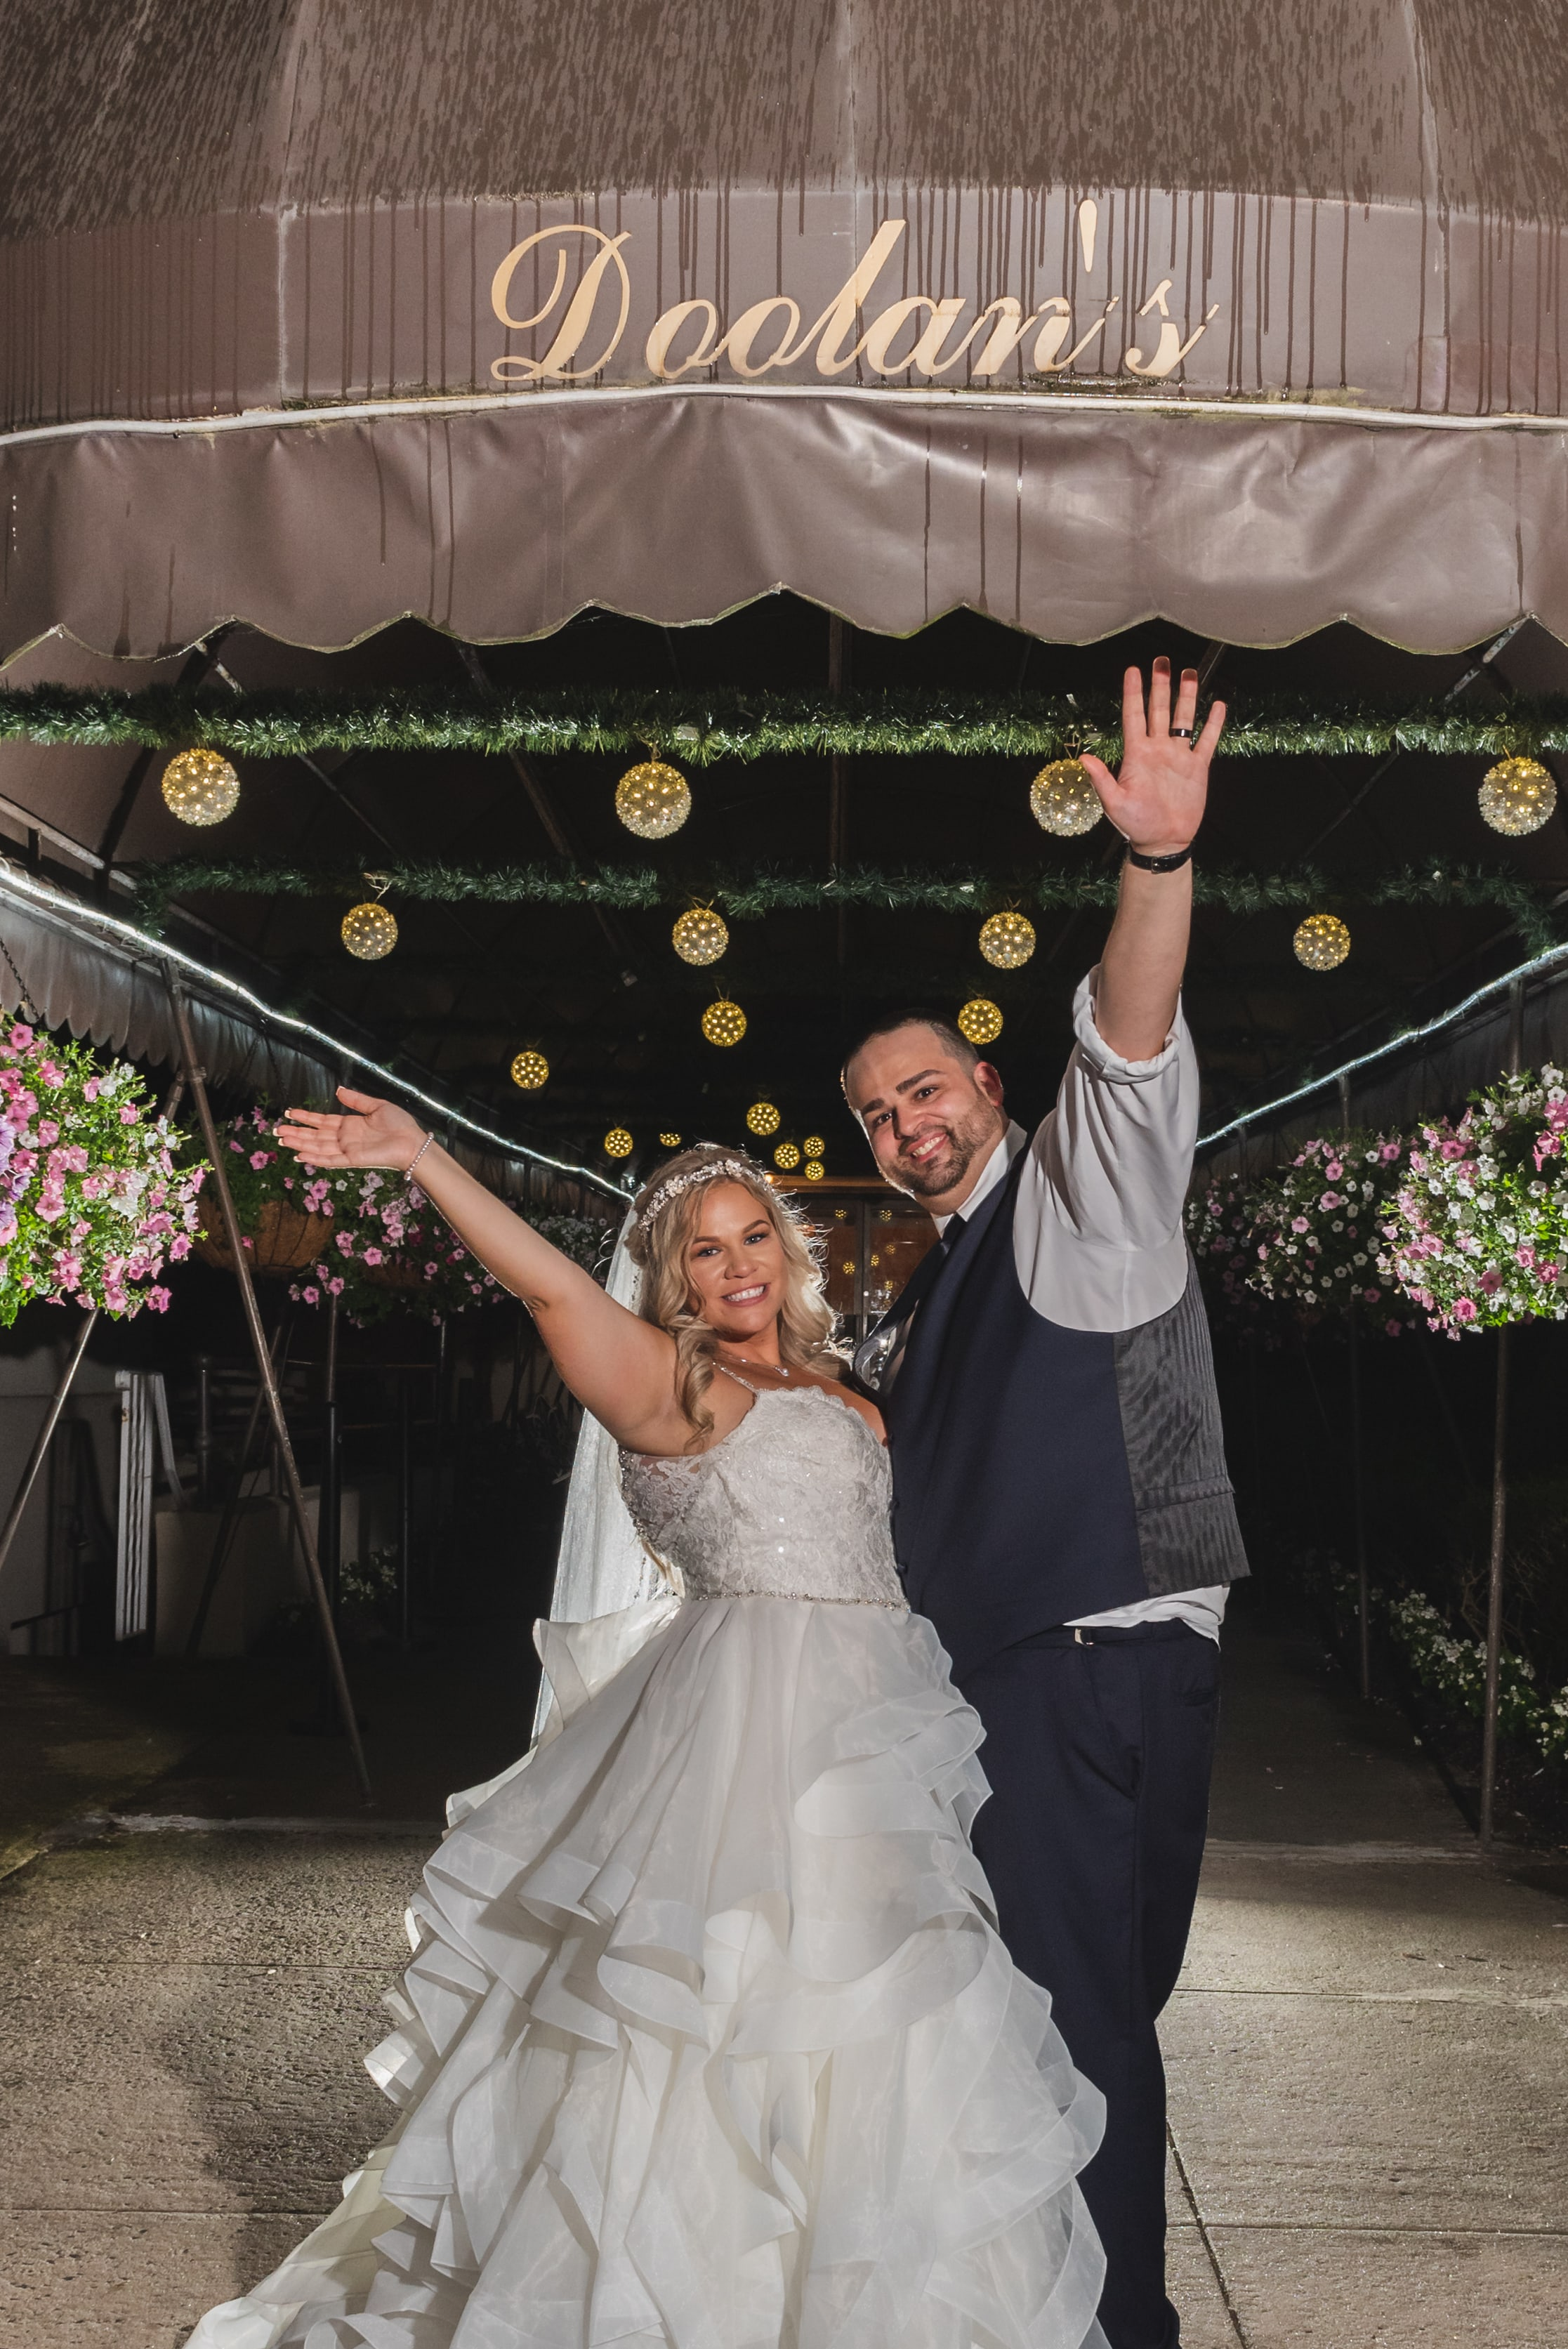 The bride and groom raising their arms in celebration in front of their reception venue.